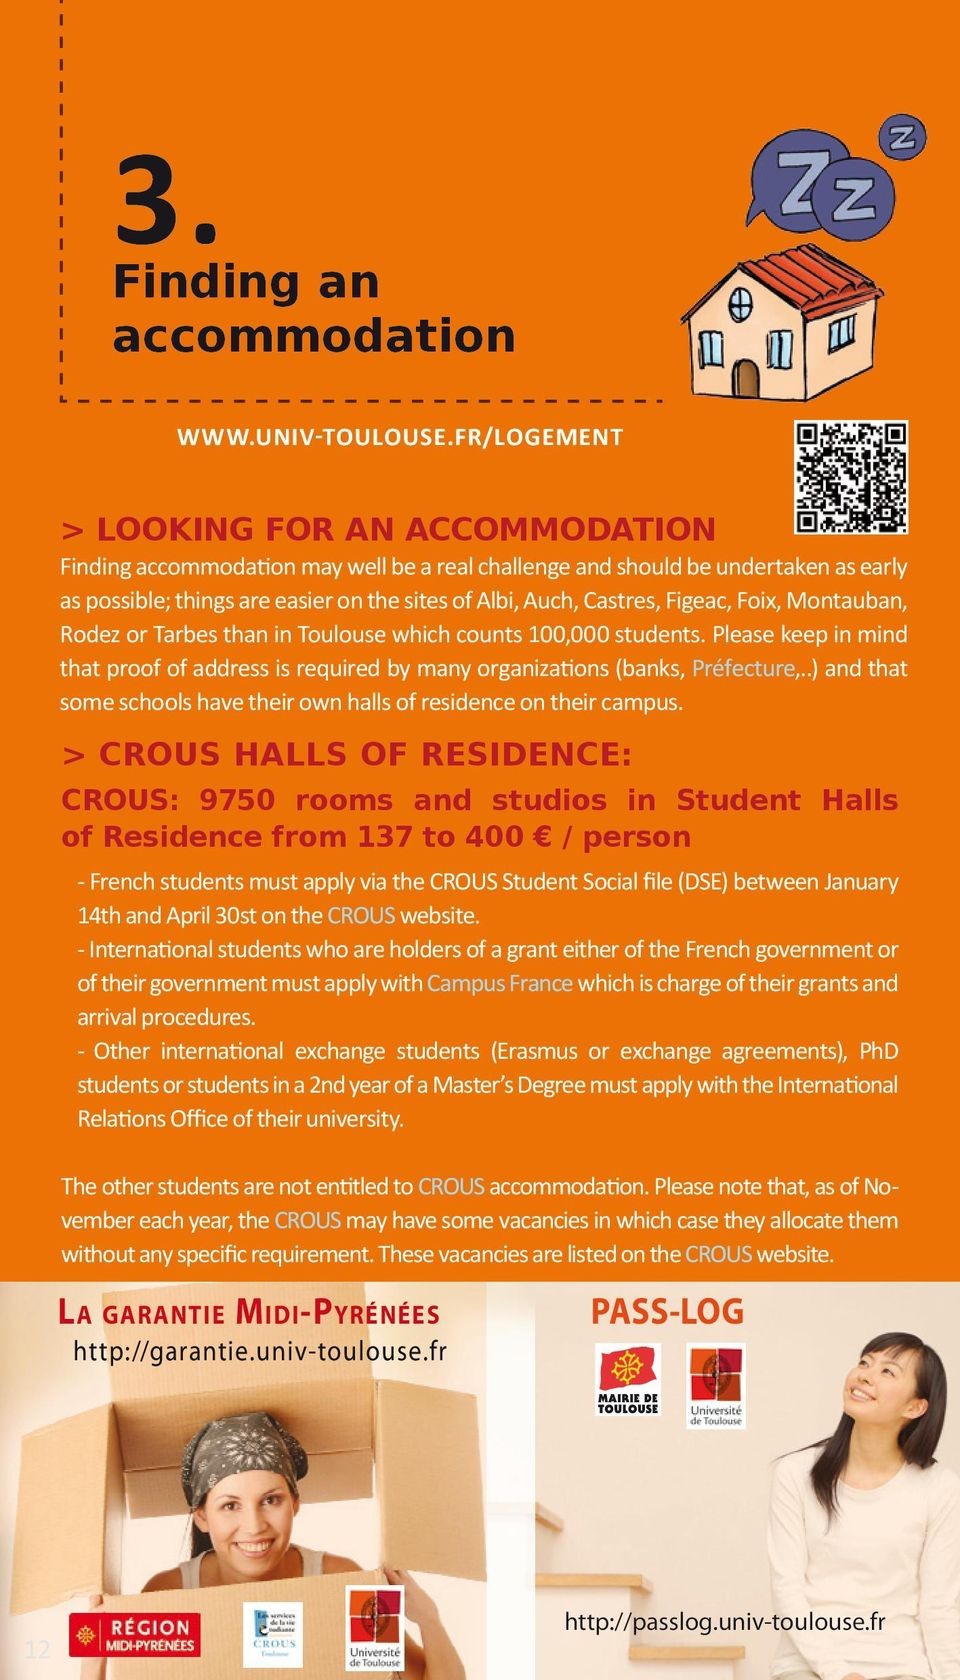 Figeac, Foix, Montauban, Rodez or Tarbes than in Toulouse which counts 100,000 students. Please keep in mind that proof of address is required by many organizations (banks, Préfecture,.